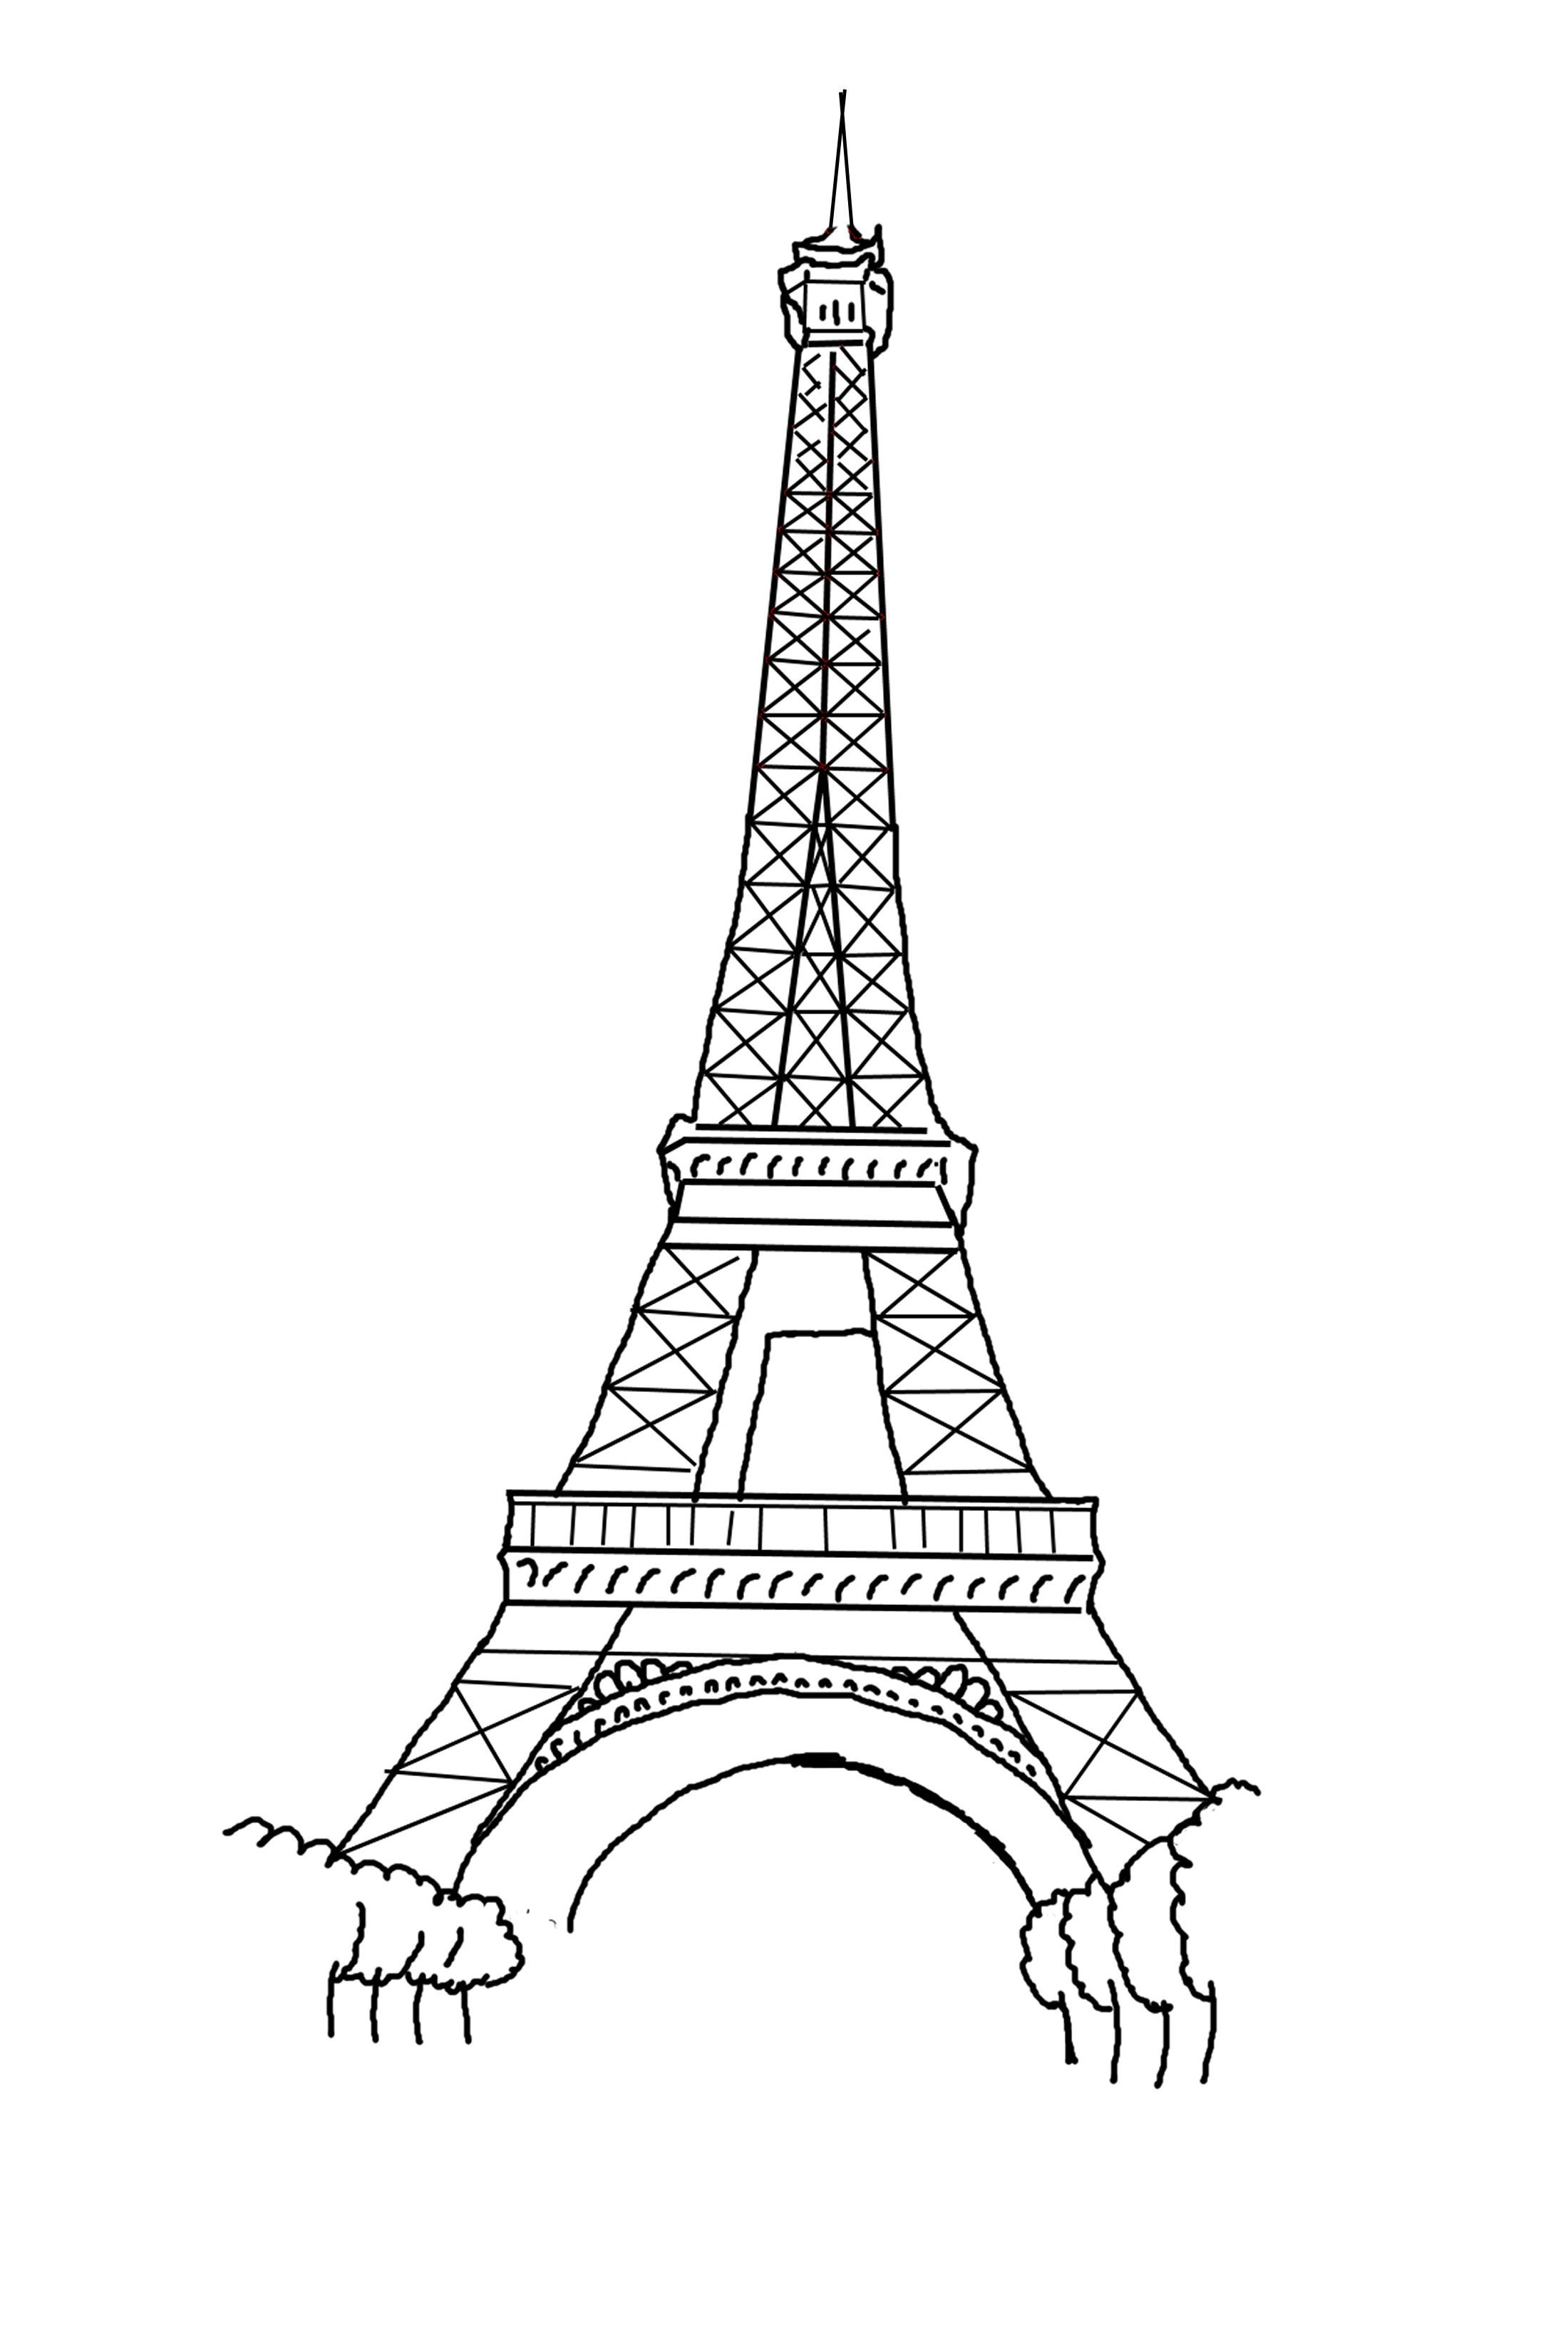 Eiffel Tower Coloring Pages This Kind Of Picture Is Available In Wide And High Resolutions Structure Very Close Graphics May Become Discovered Our Set